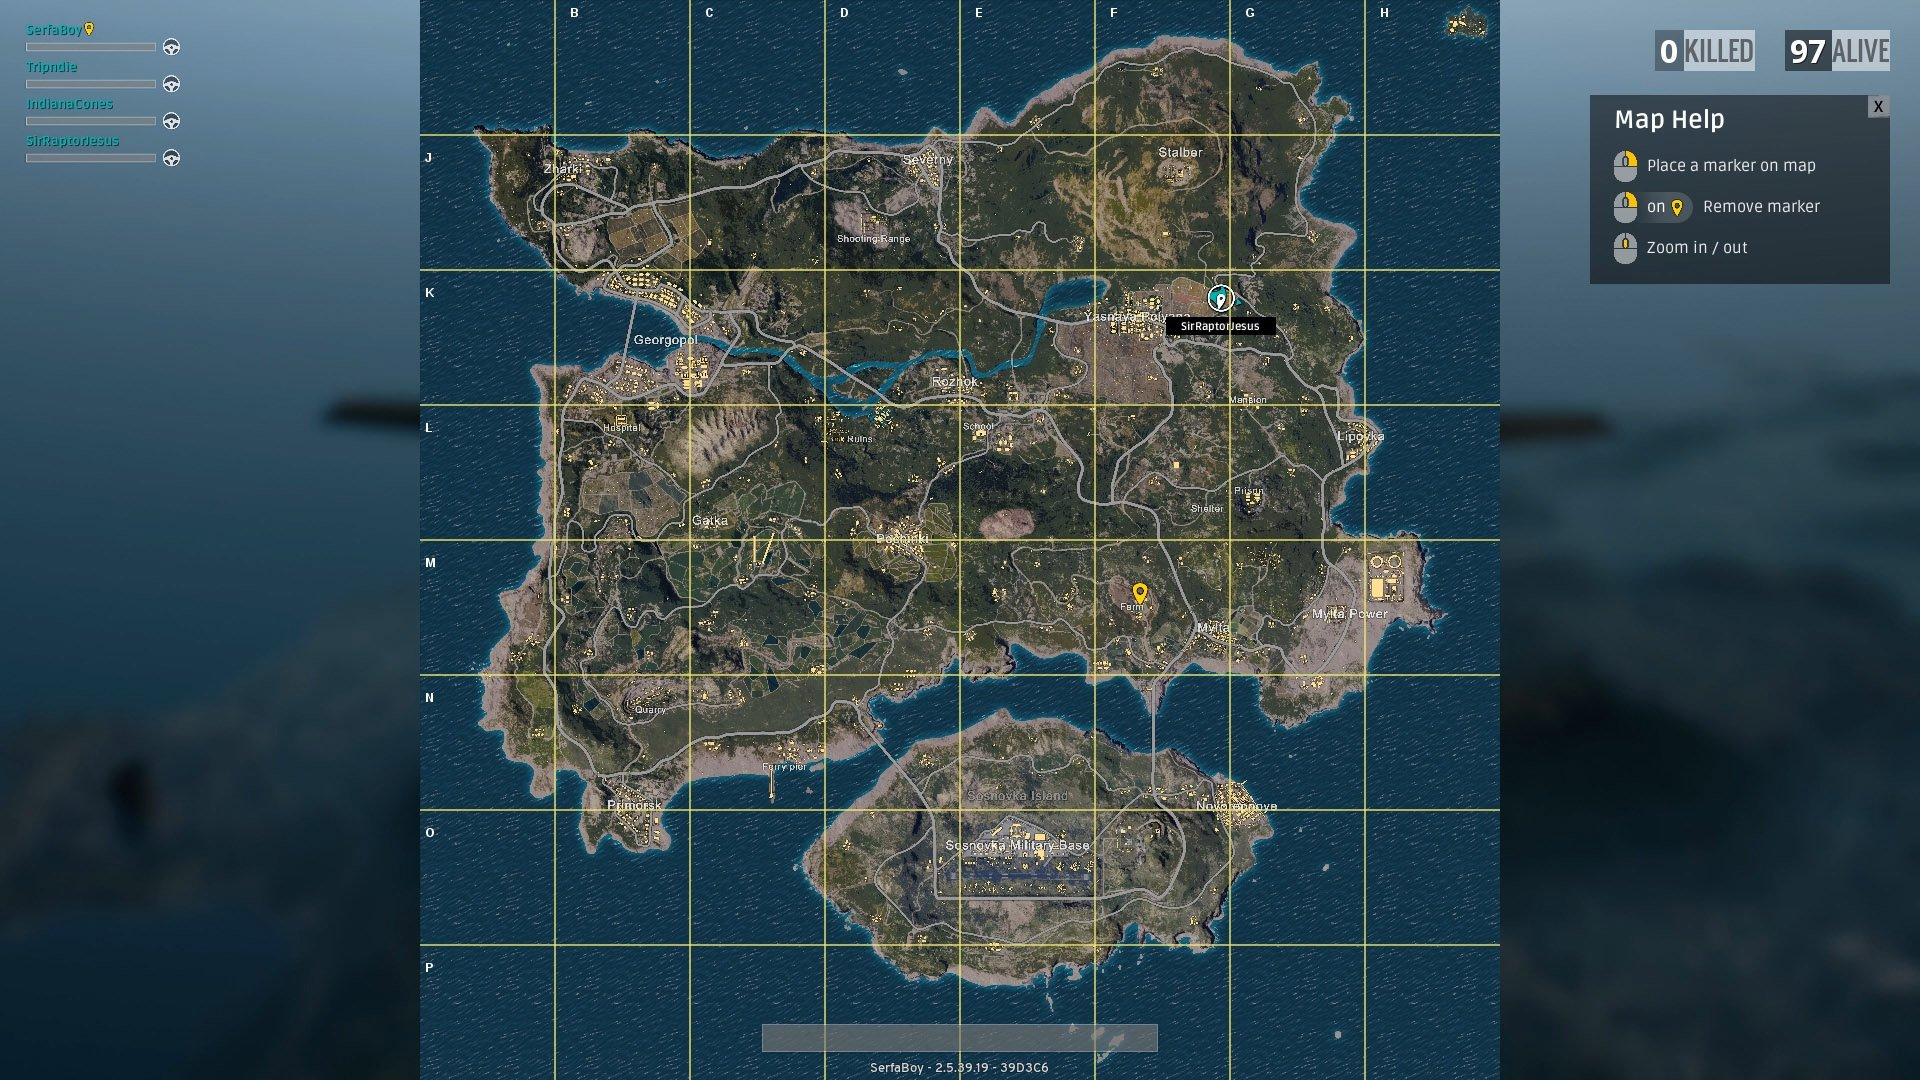 Predict where the plane will go and find a good place to land somewhere nearby. Alternatively, you can go for a long drop further away from popular areas.